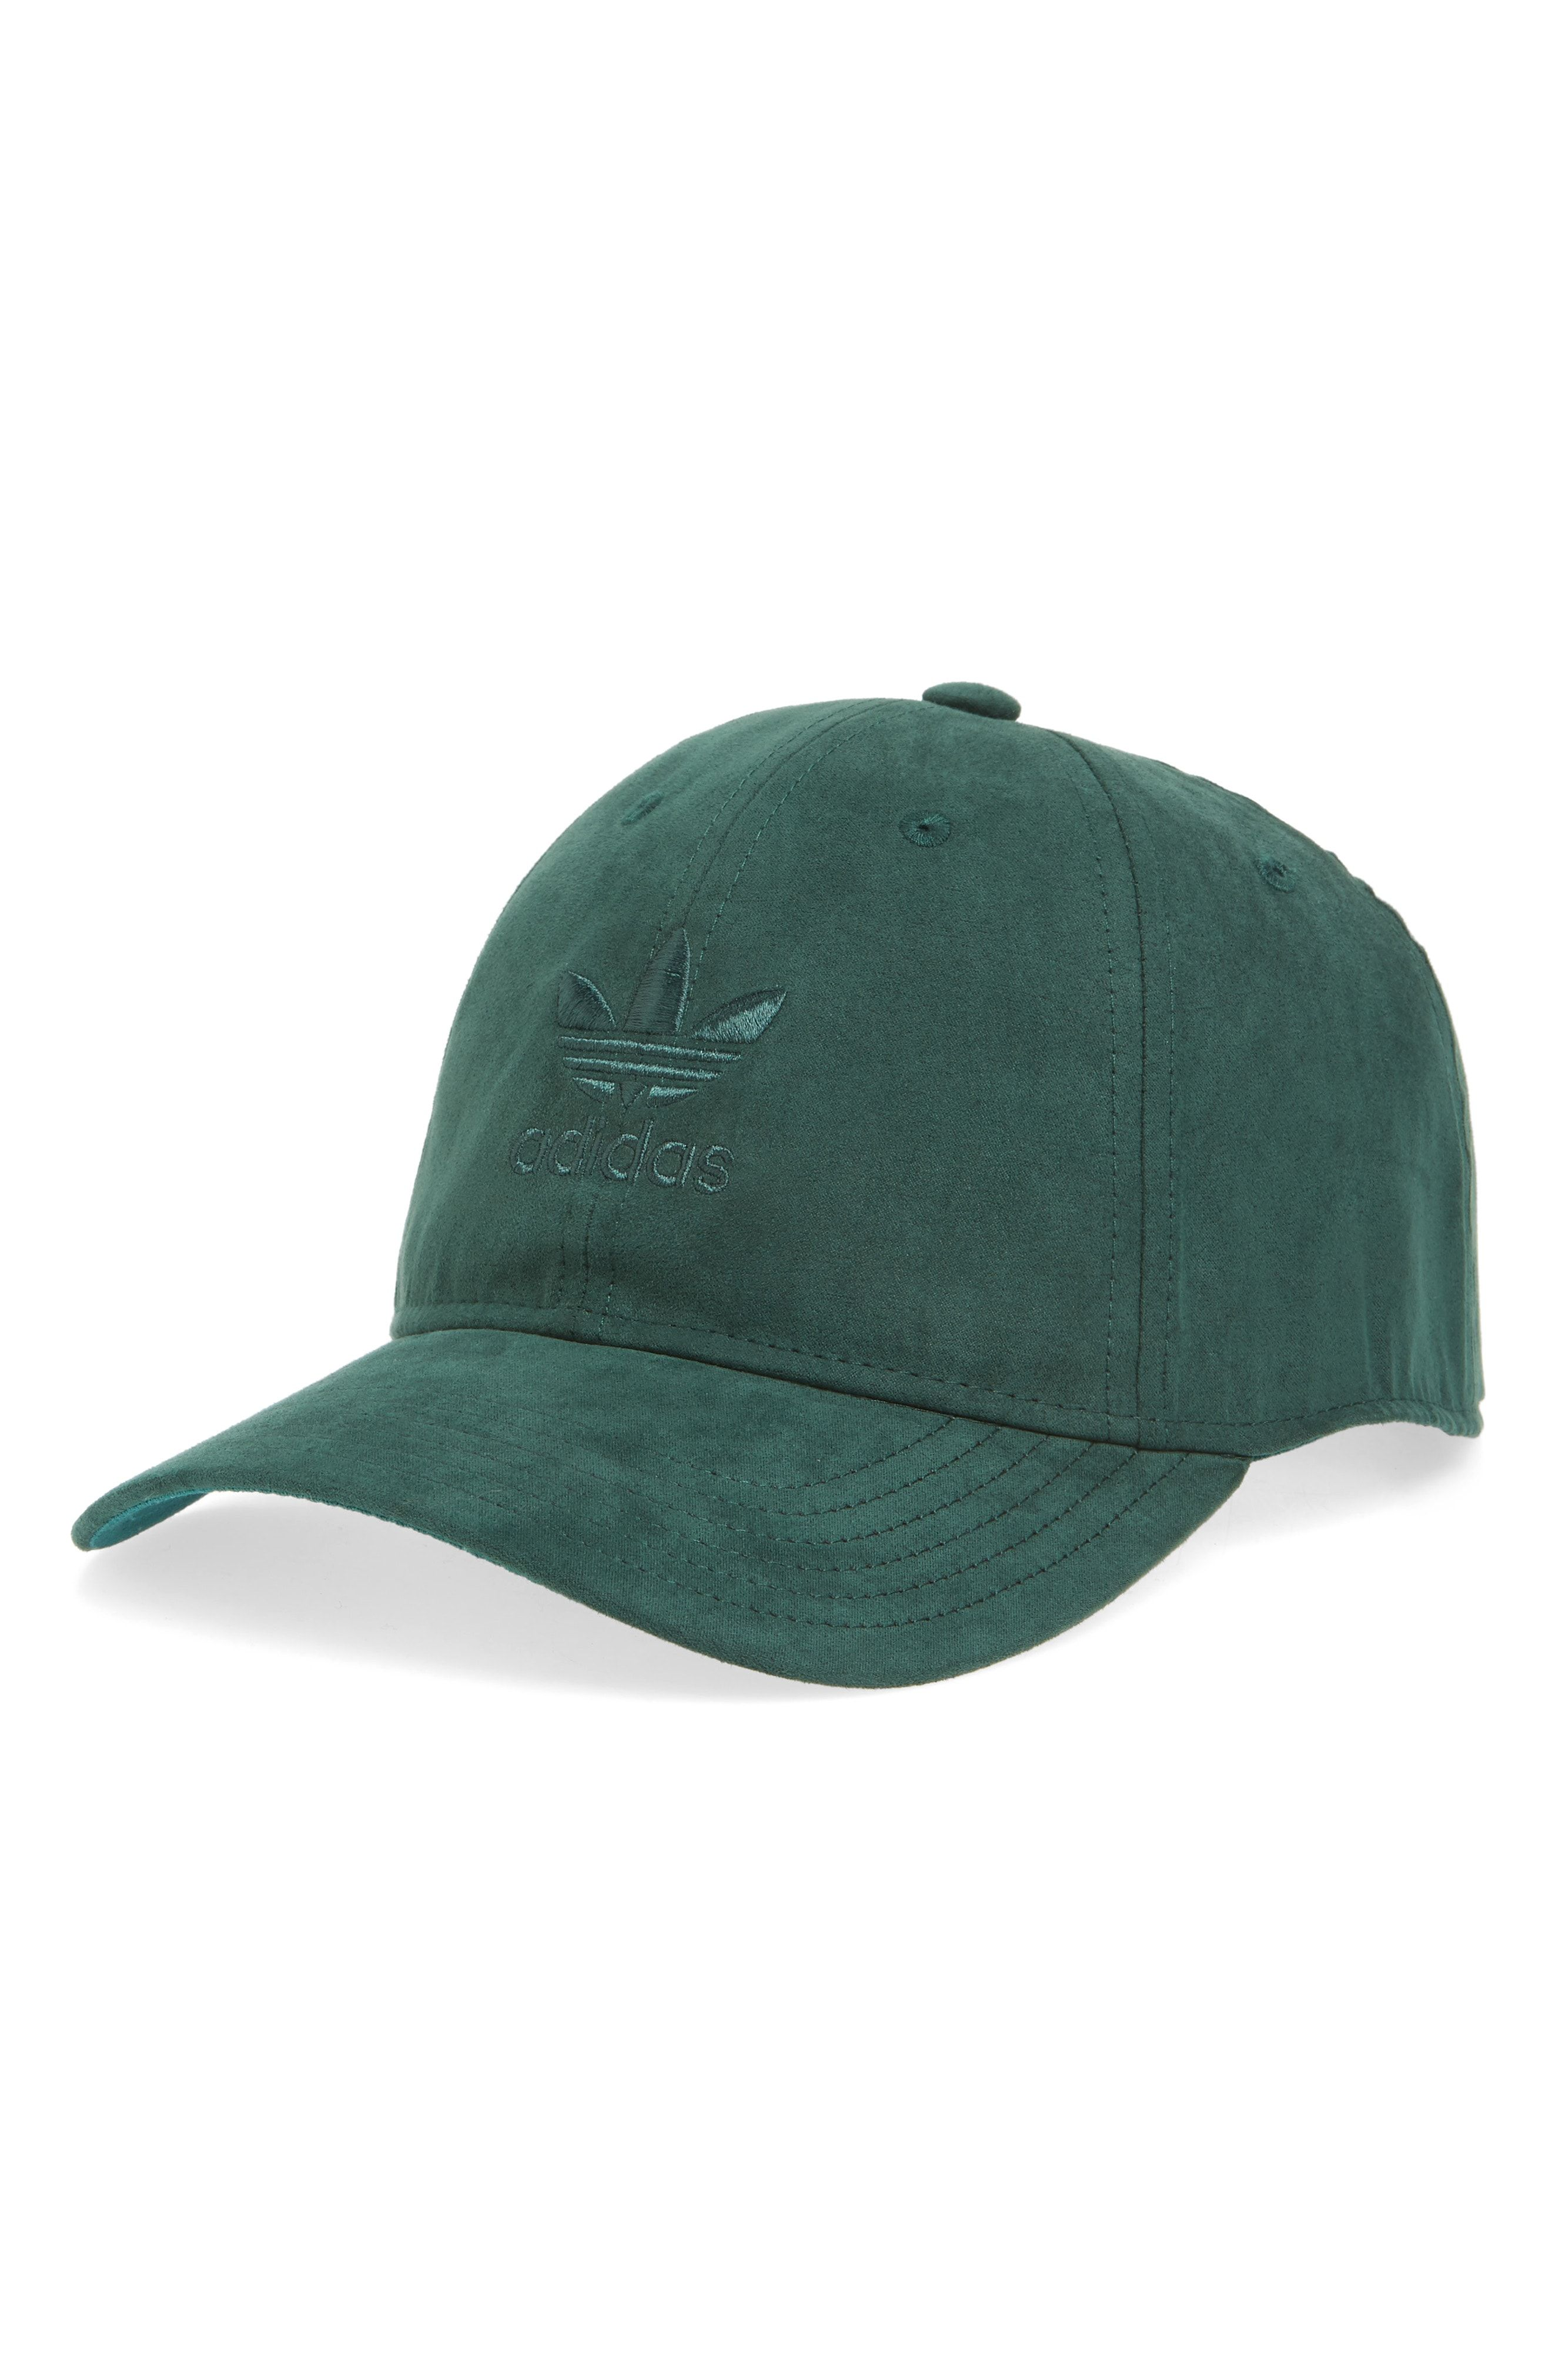 4191c9a8ff3 ADIDAS ORIGINALS RELAXED PLUS BALL CAP - GREEN.  adidasoriginals ...